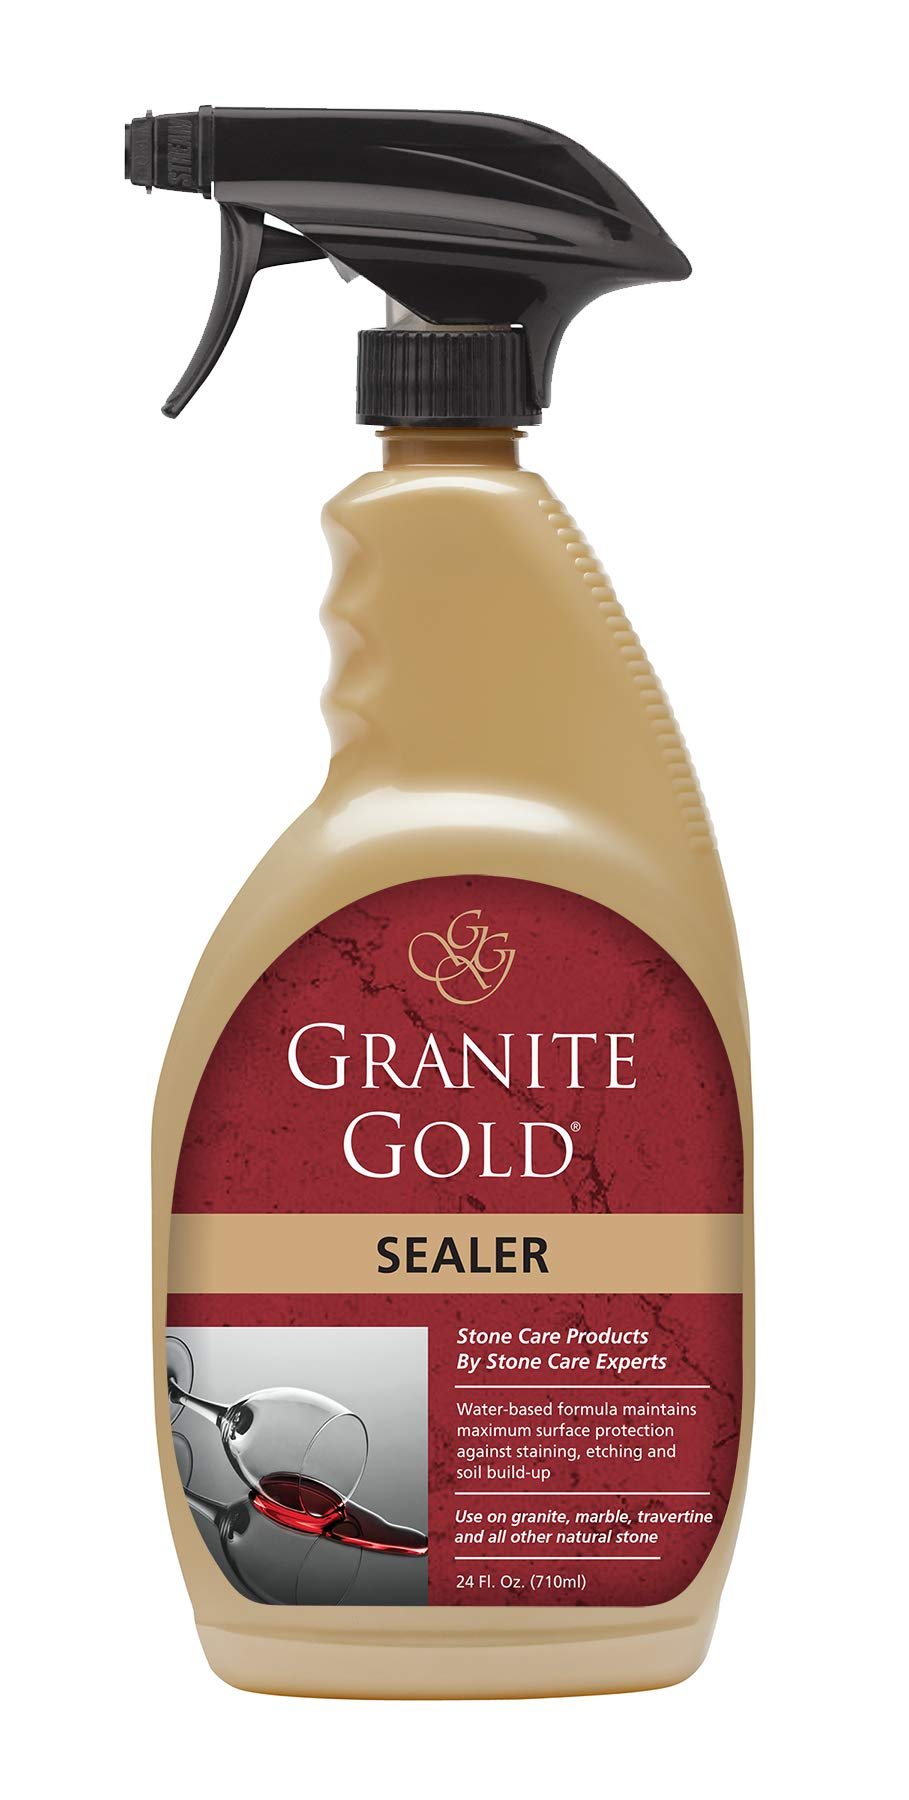 Granite Gold Sealer Spray - Water-Based Stone Sealing To Preserve And Protect Countertops - 24 Ounces by Granite Gold